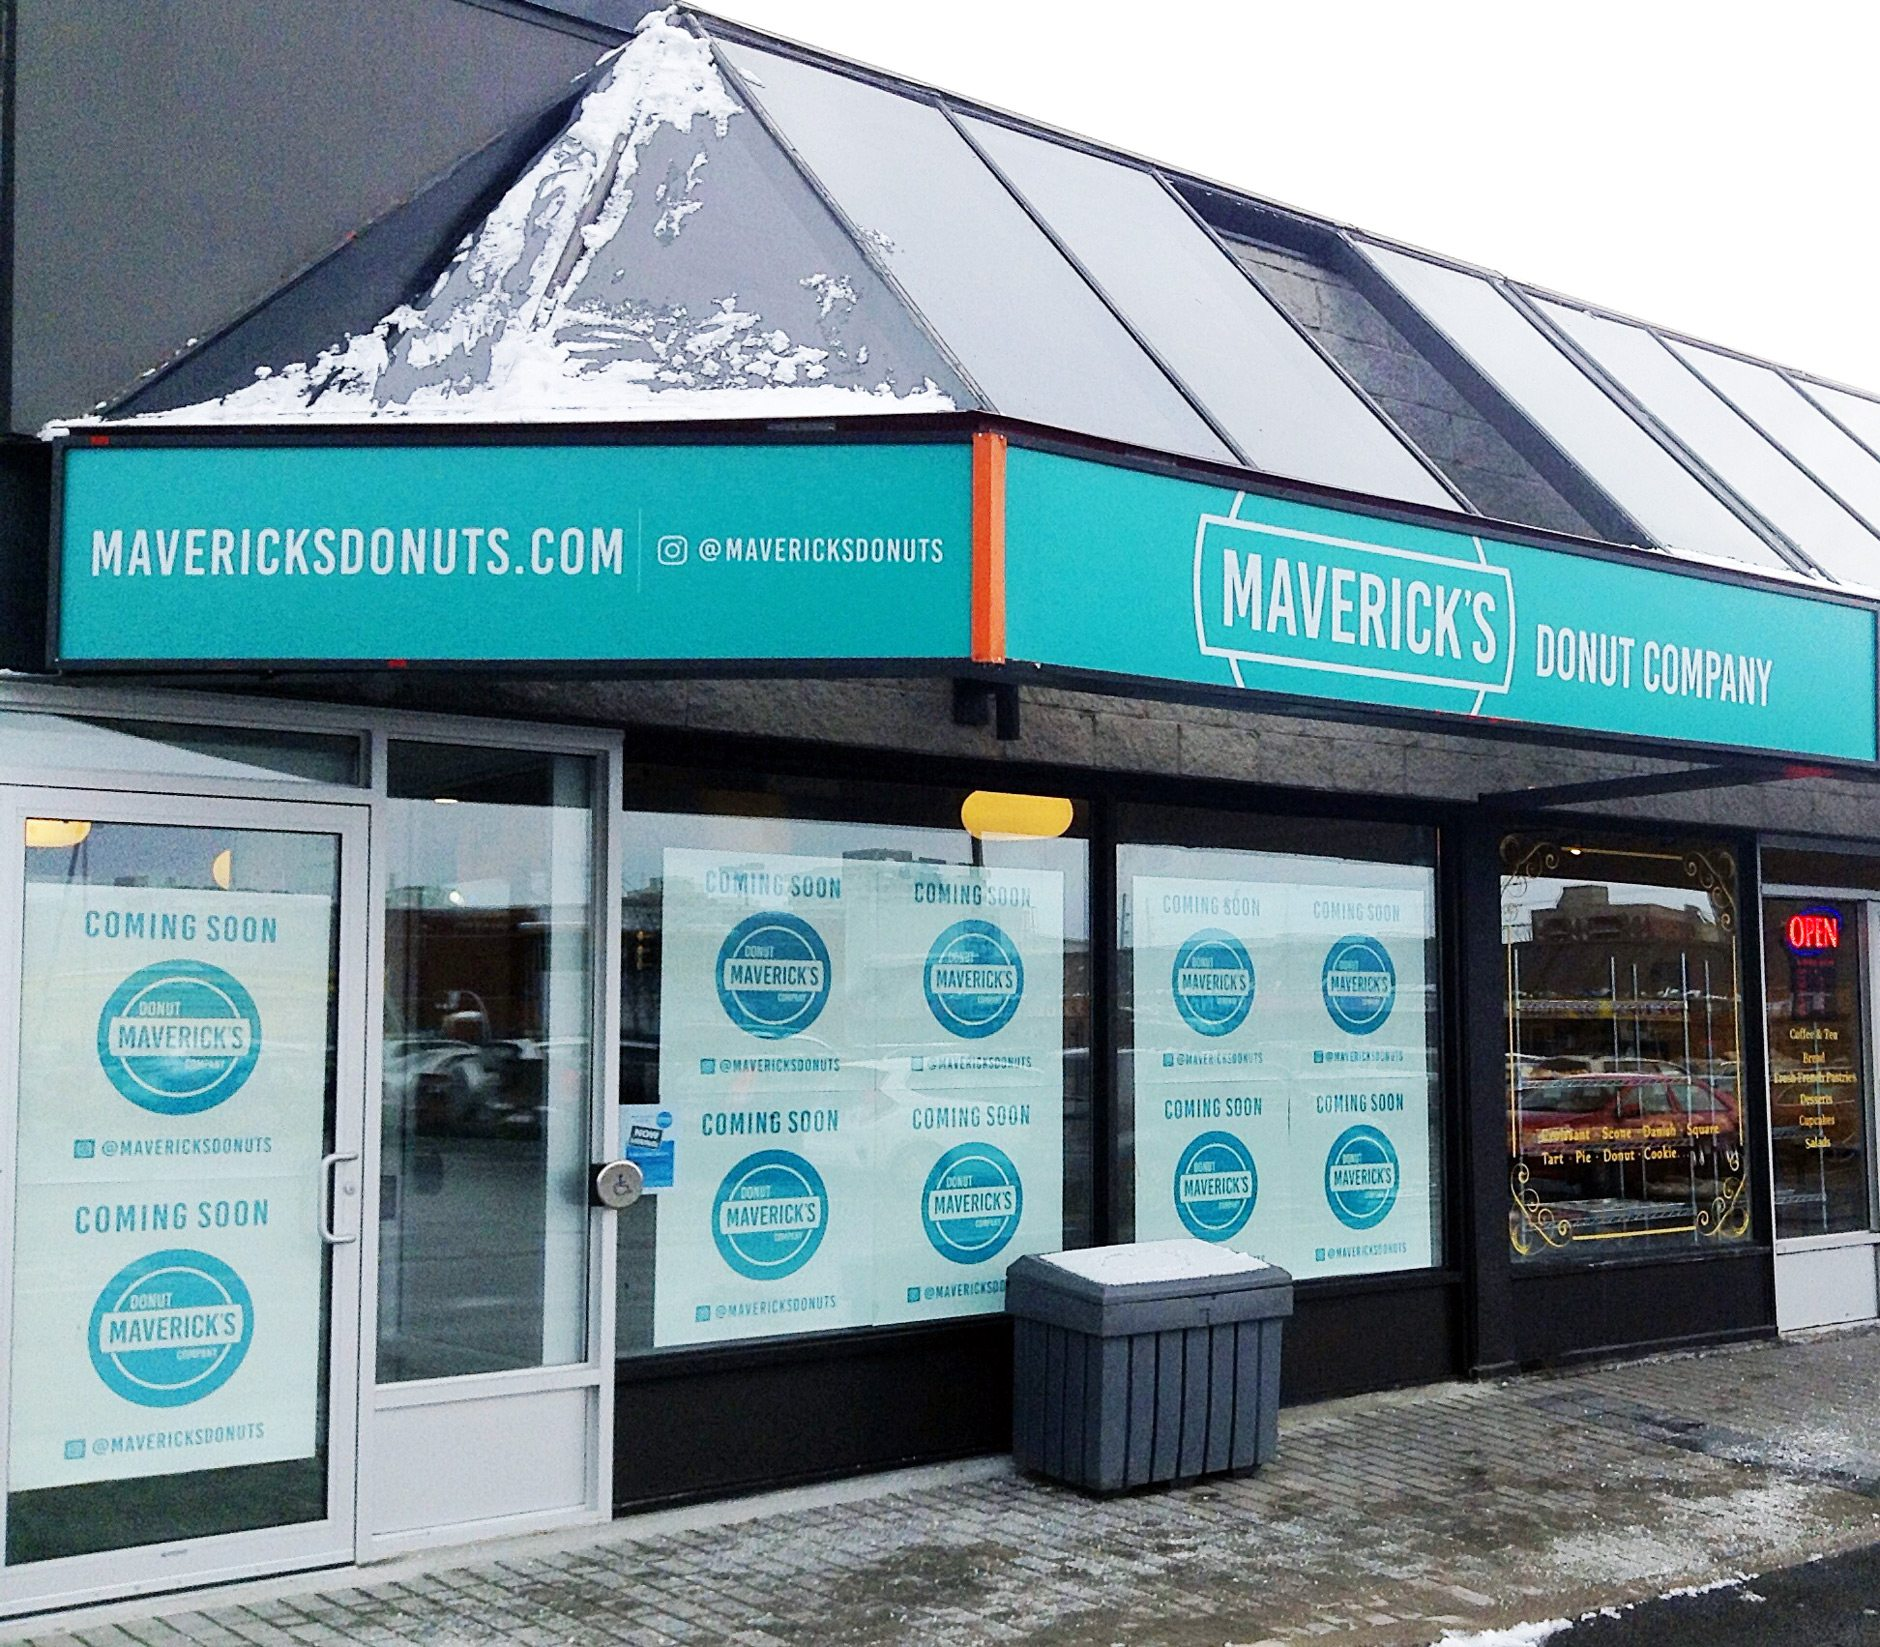 Maverick's Donut Company, located at the Blue Heron Mall at 1500 Bank Street, opens for business this Friday